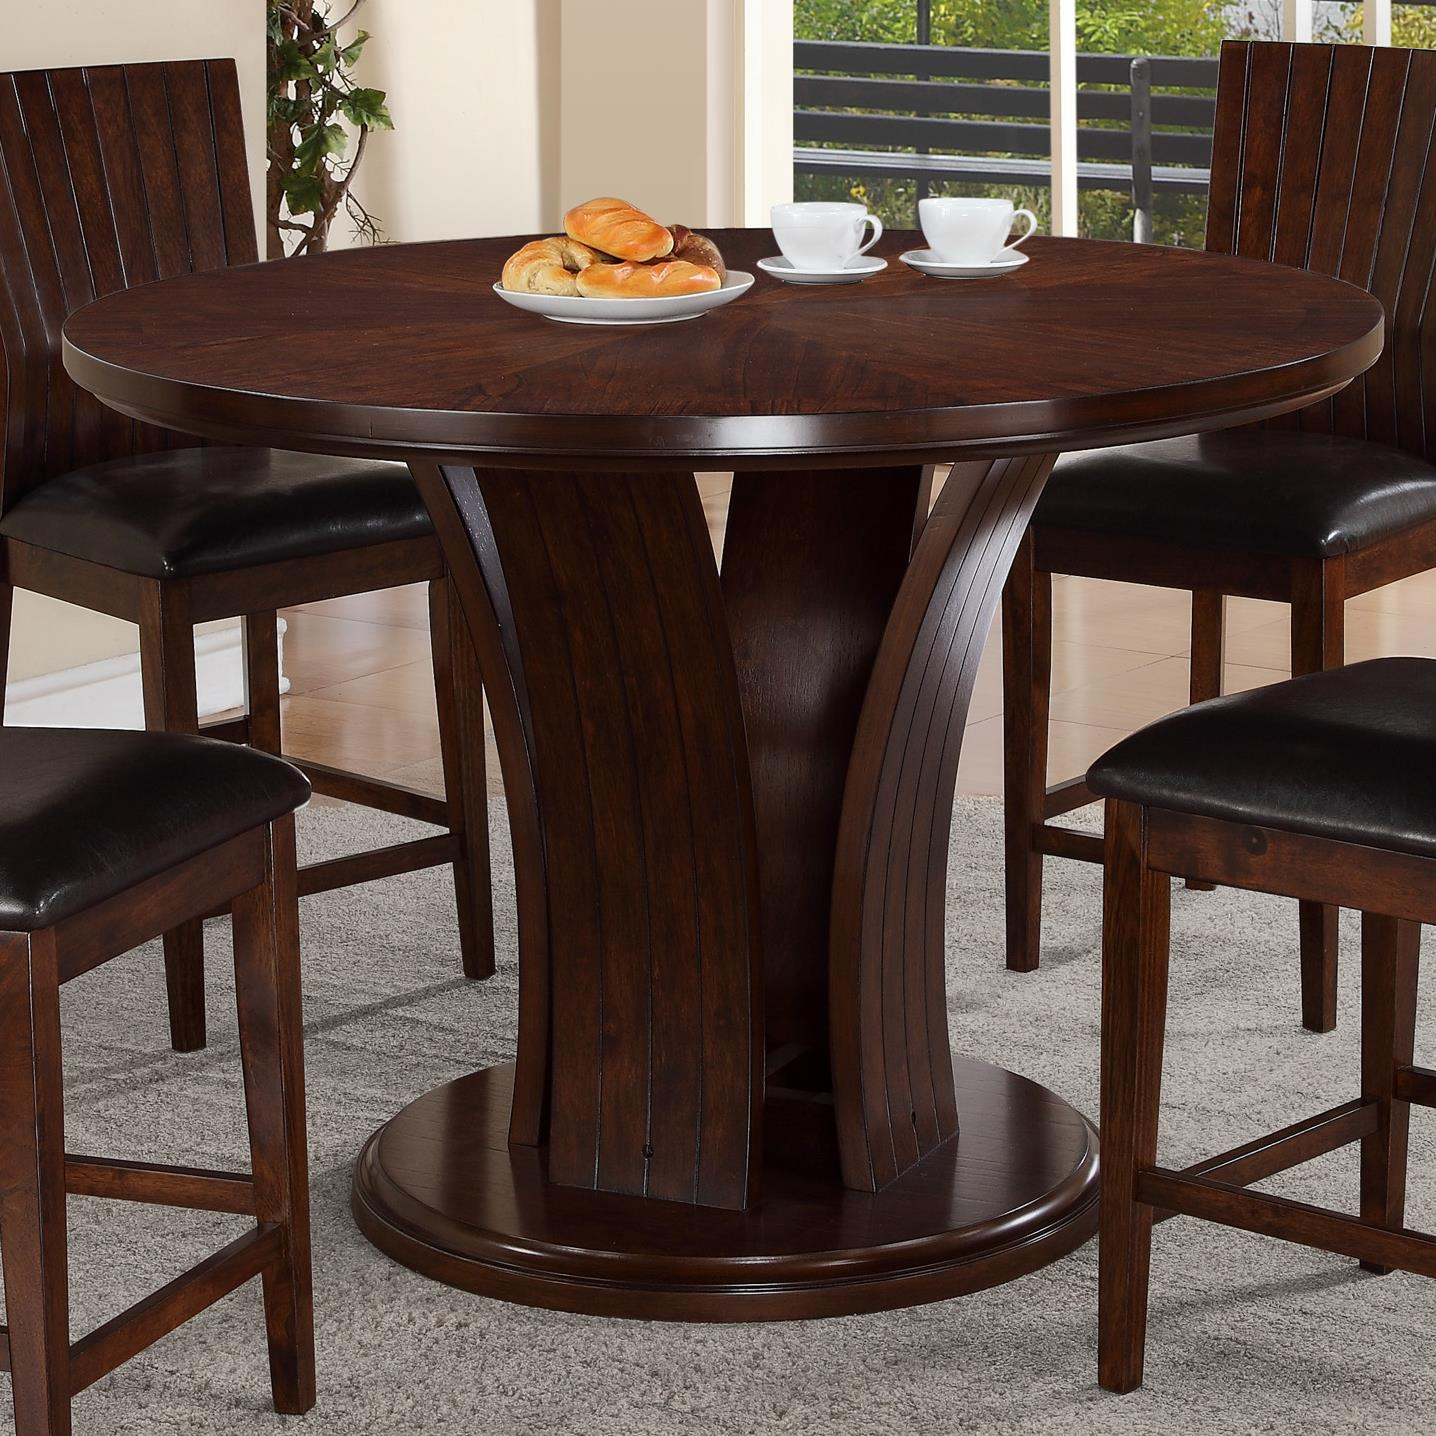 5pc Set Round Dinette Kitchen Table W 4 Microfiber: 5pc Couter Height Round Table 4 Chairs Uph